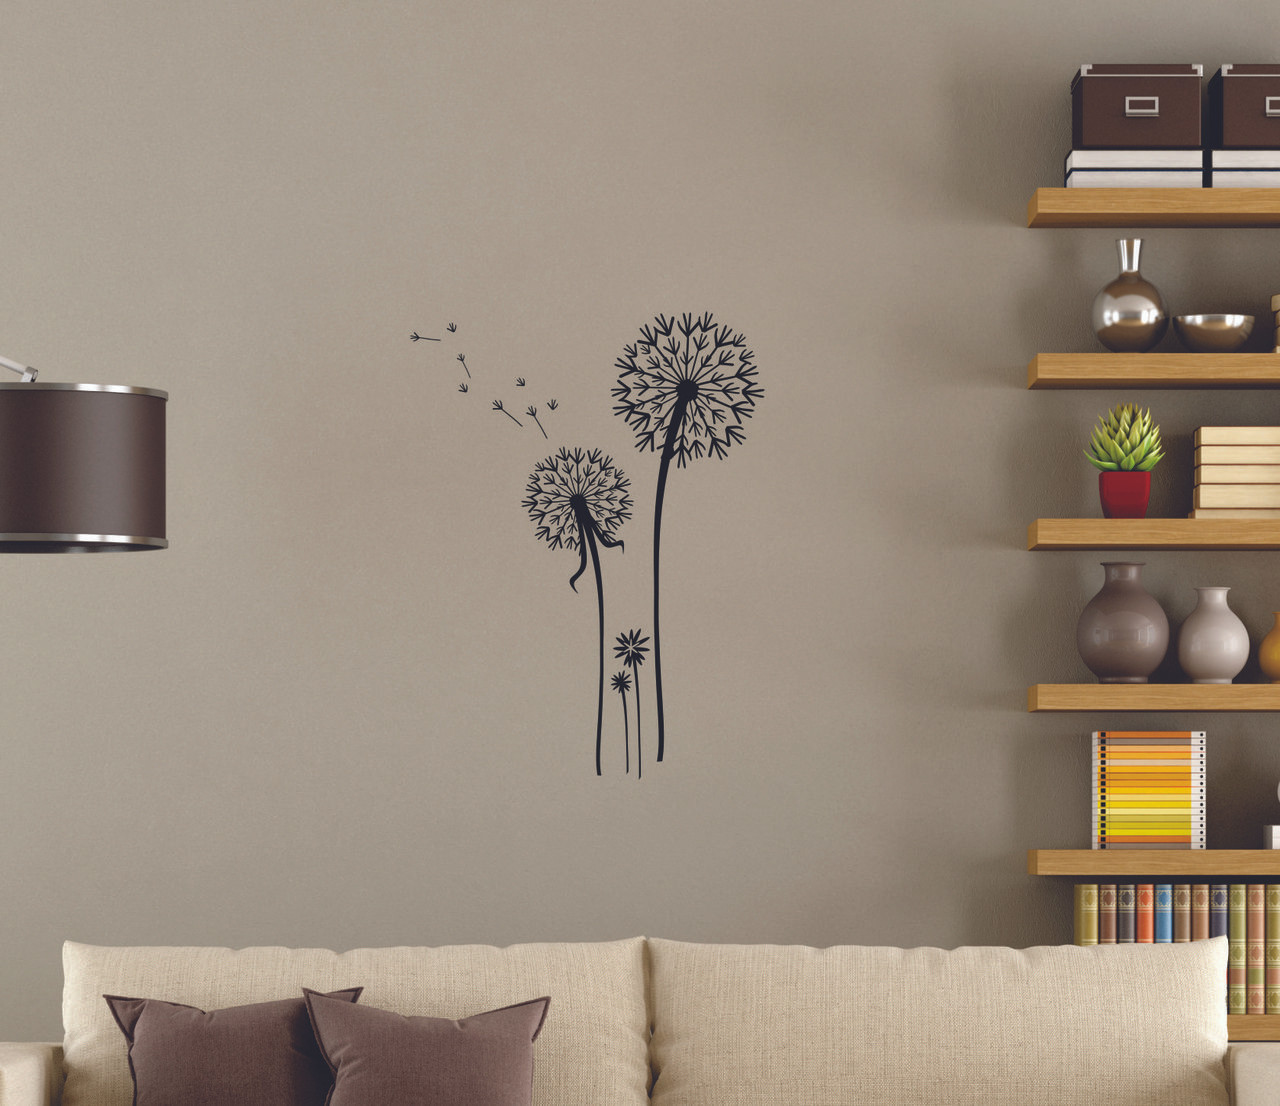 Balancing gymnast silhouette and stars with gymnastics rocks girls dandelion flower wall stickers decals popular wall art amipublicfo Images